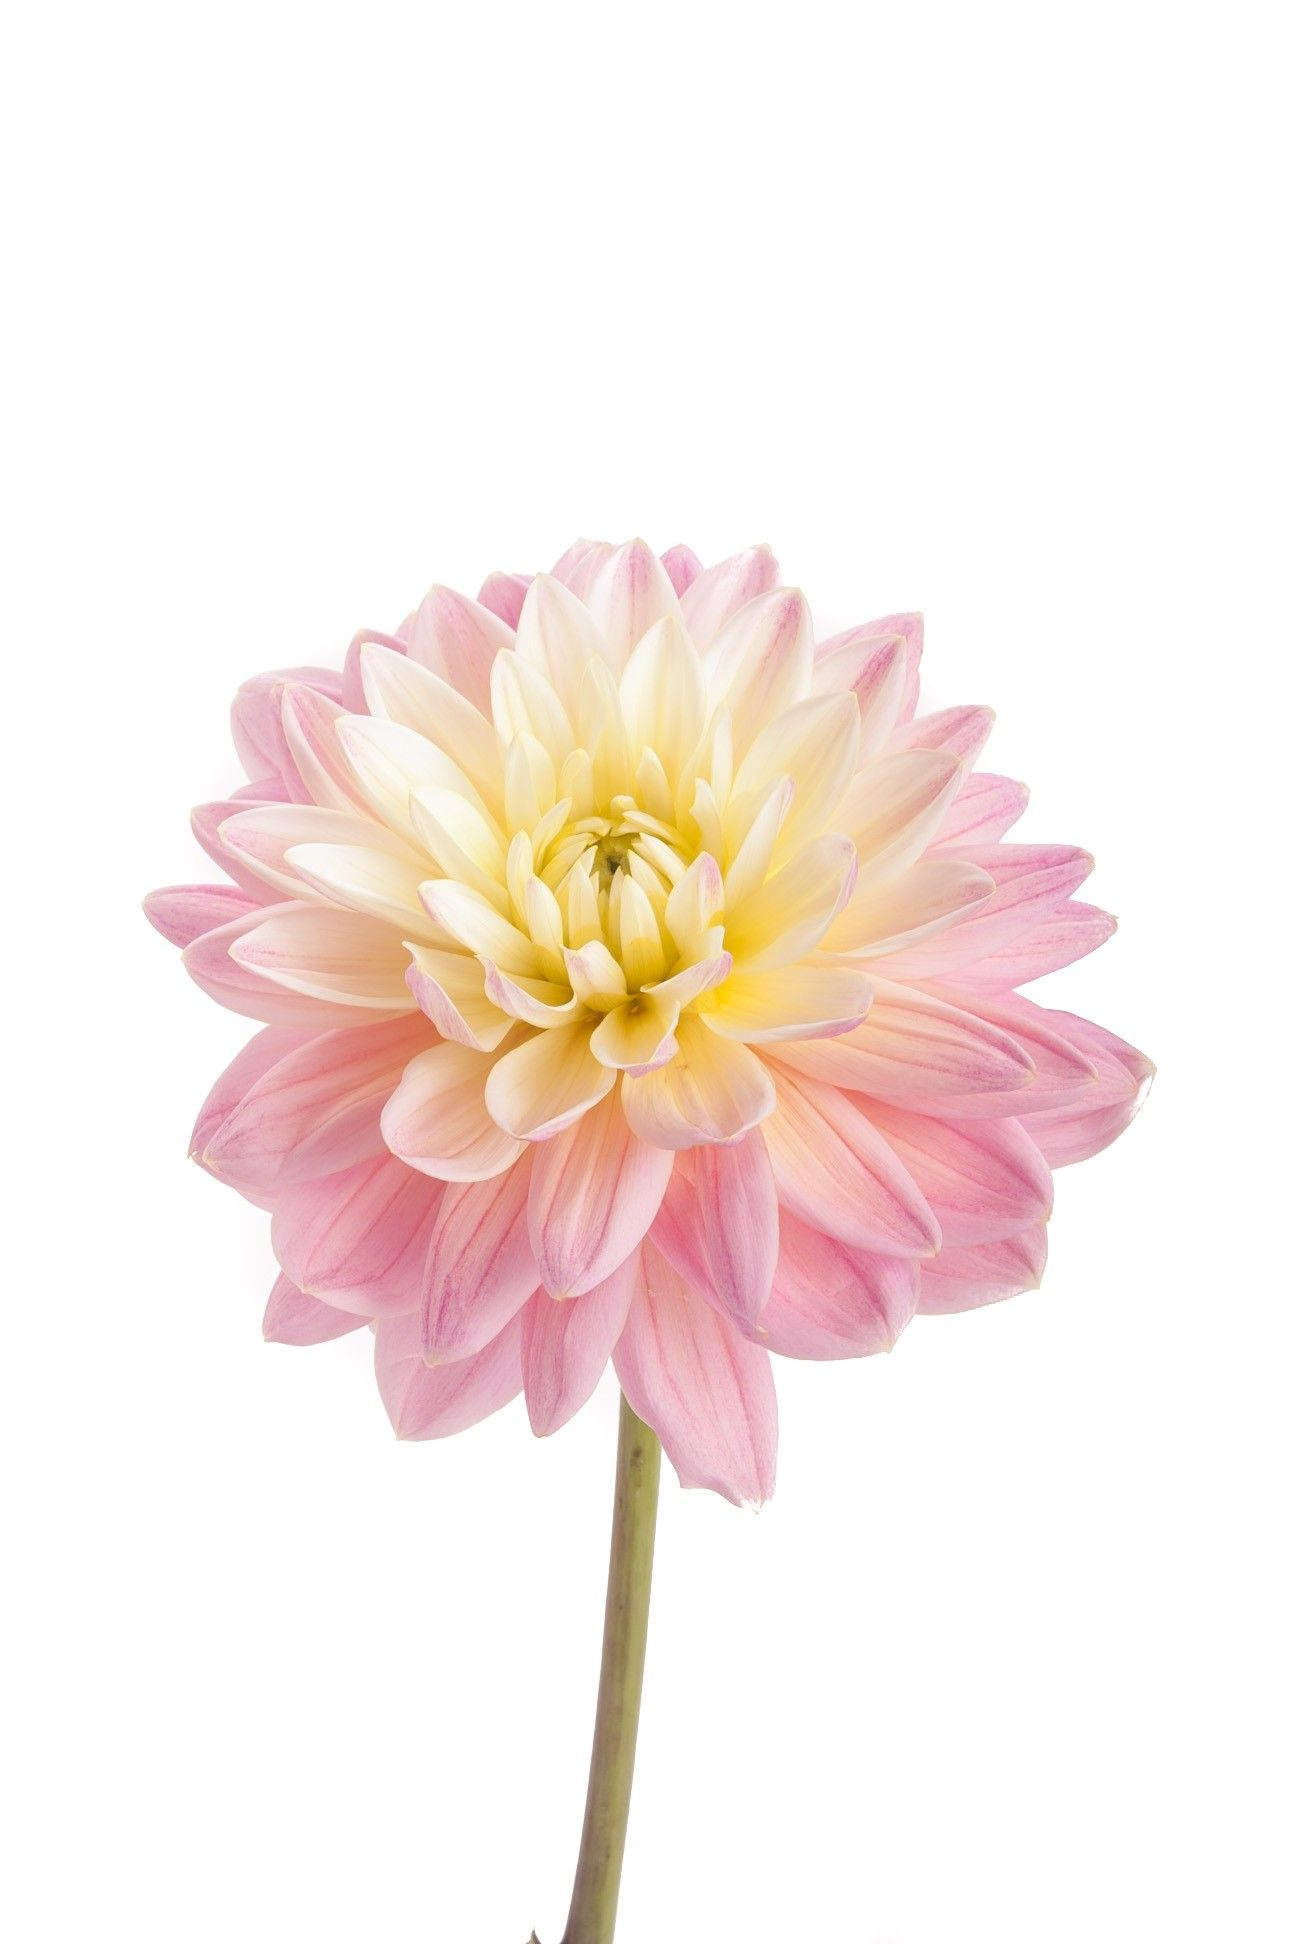 Cream And Light Pink Dahlia Flowers Types Of Flowers Amazing Flowers Flowers